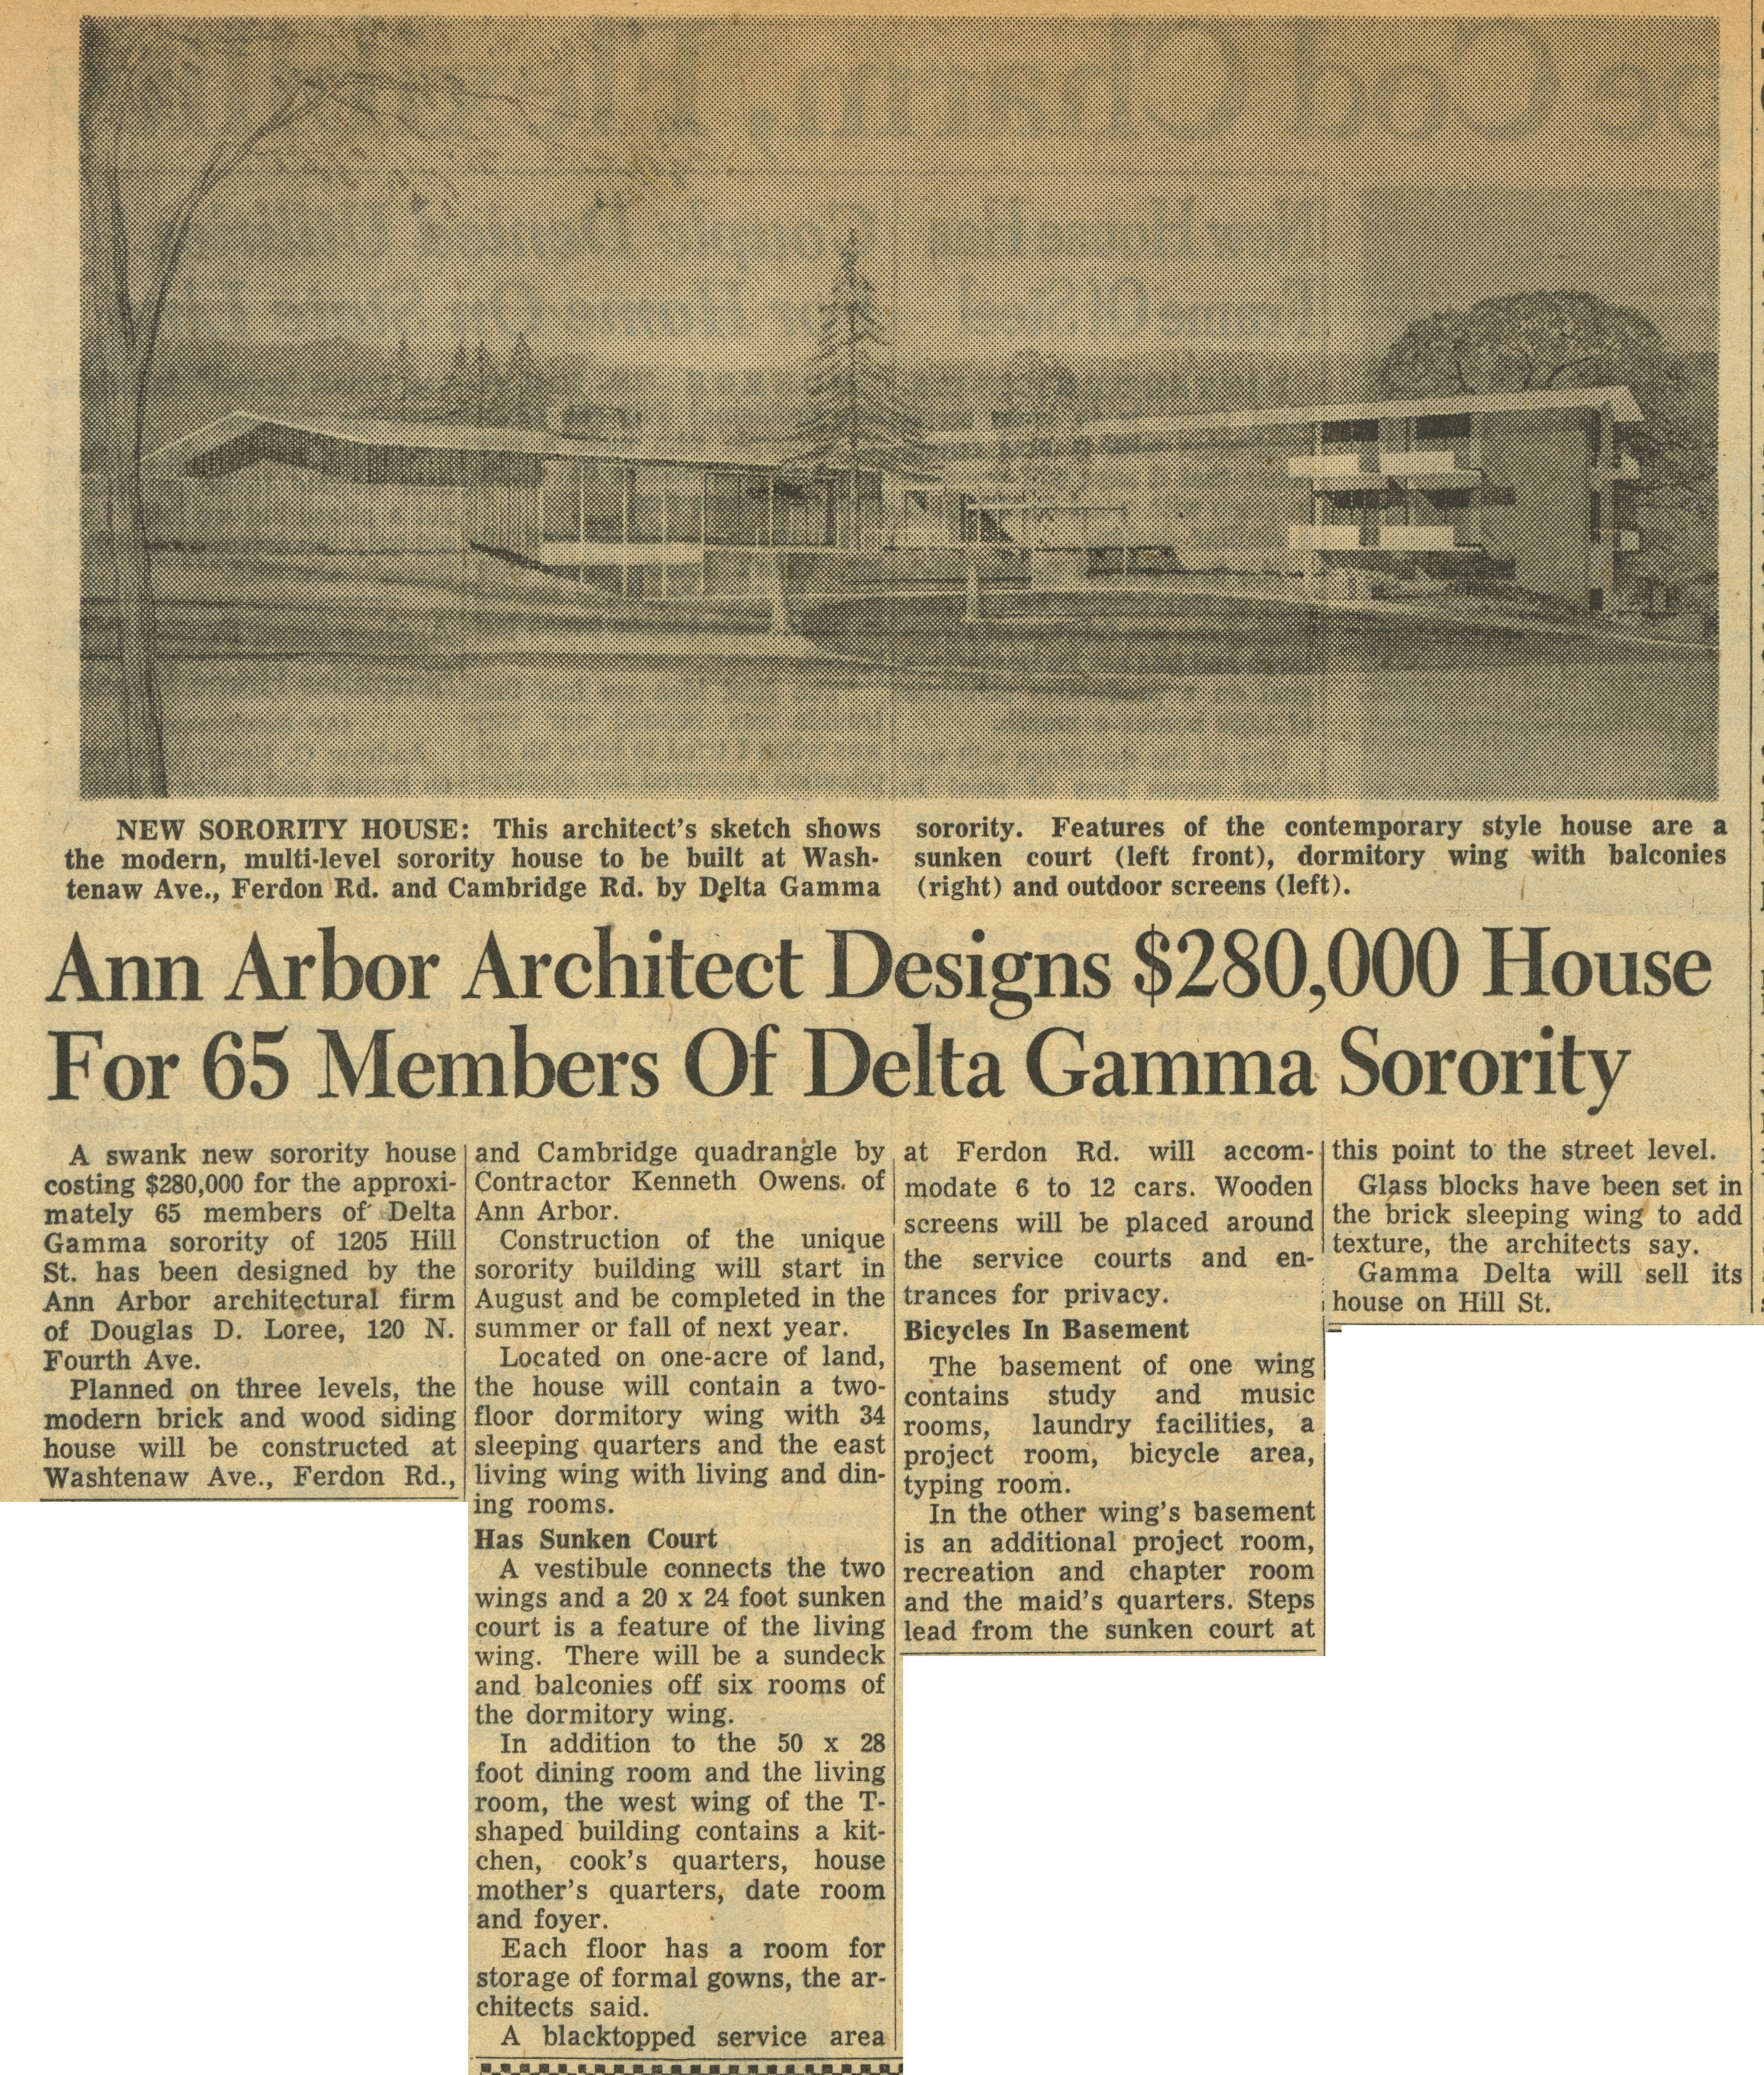 Ann Arbor Architect Designs $280,000 House For 65 Members Of Delta Gamma Sorority image